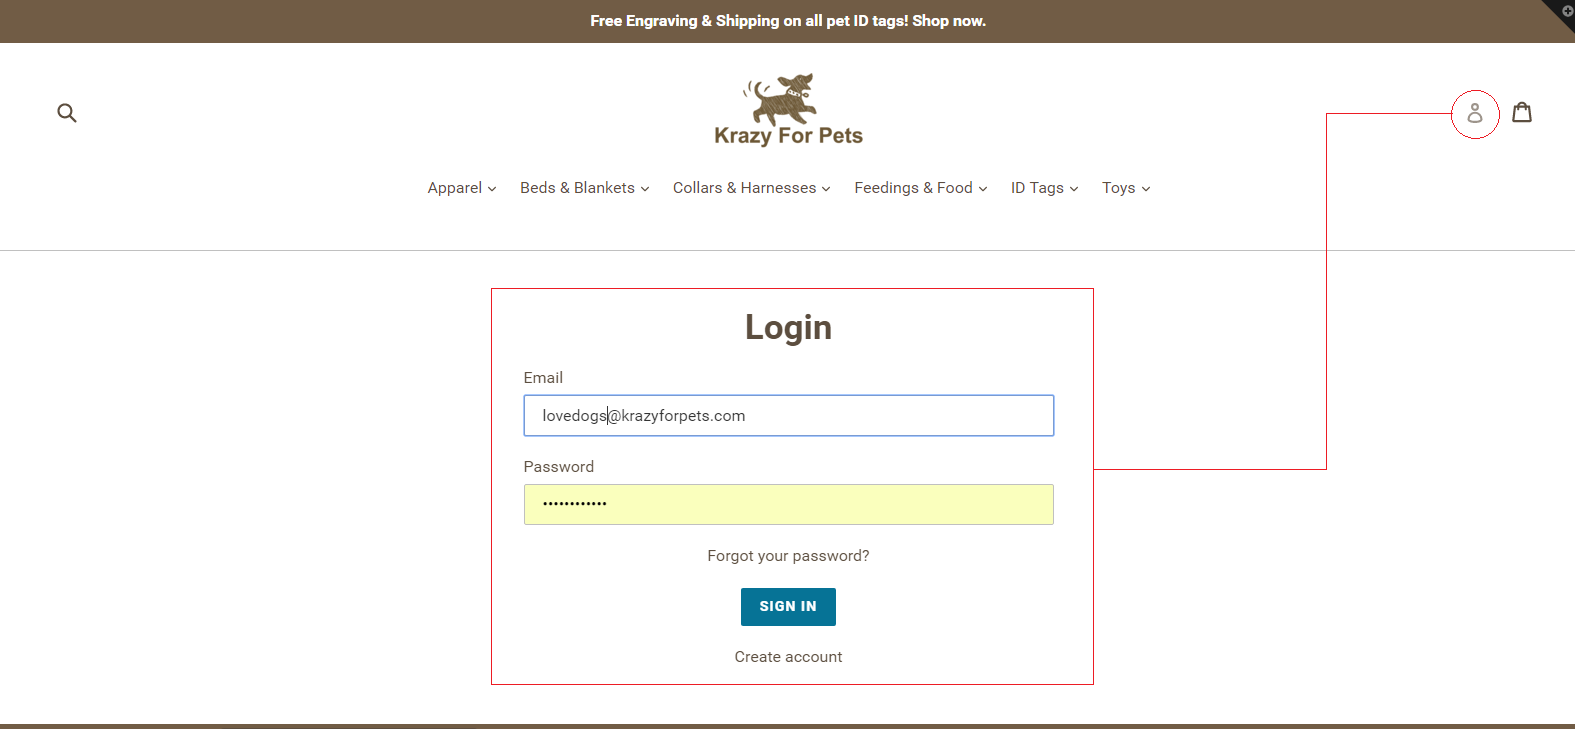 How to create an account at Krazy For Pets